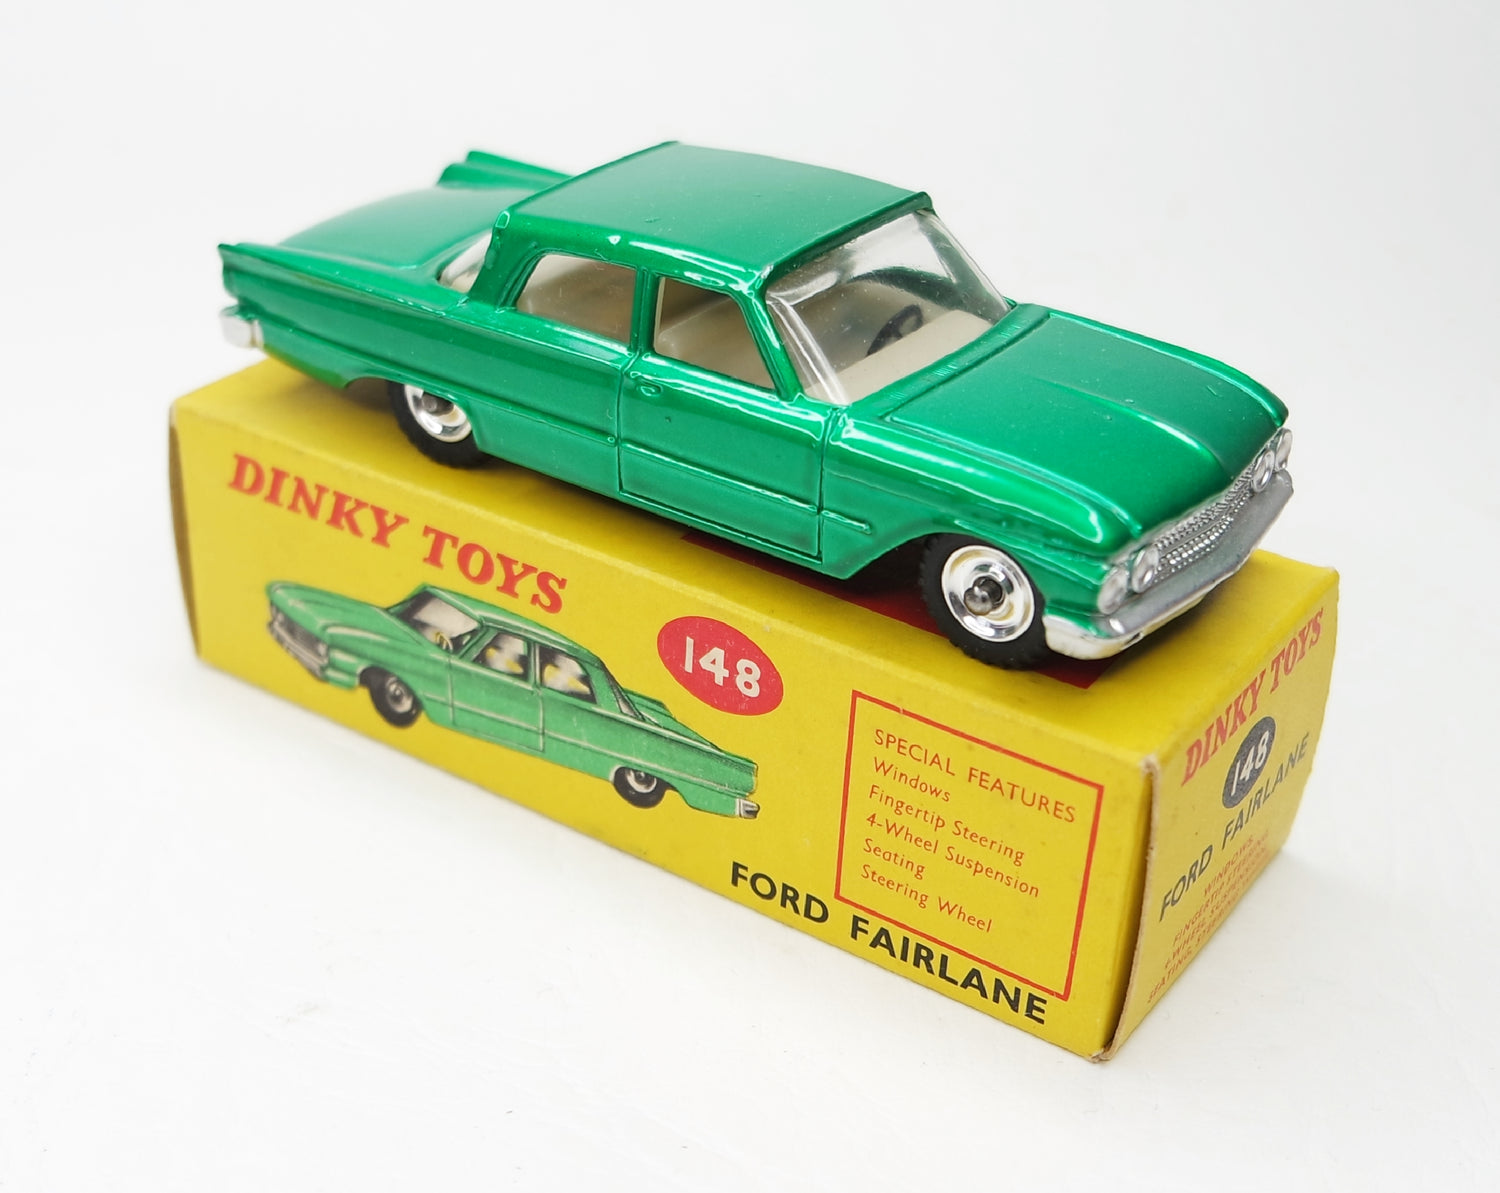 Dinky Toys 148 Ford Fairlane Virtually Mint/Boxed (C.T.C)